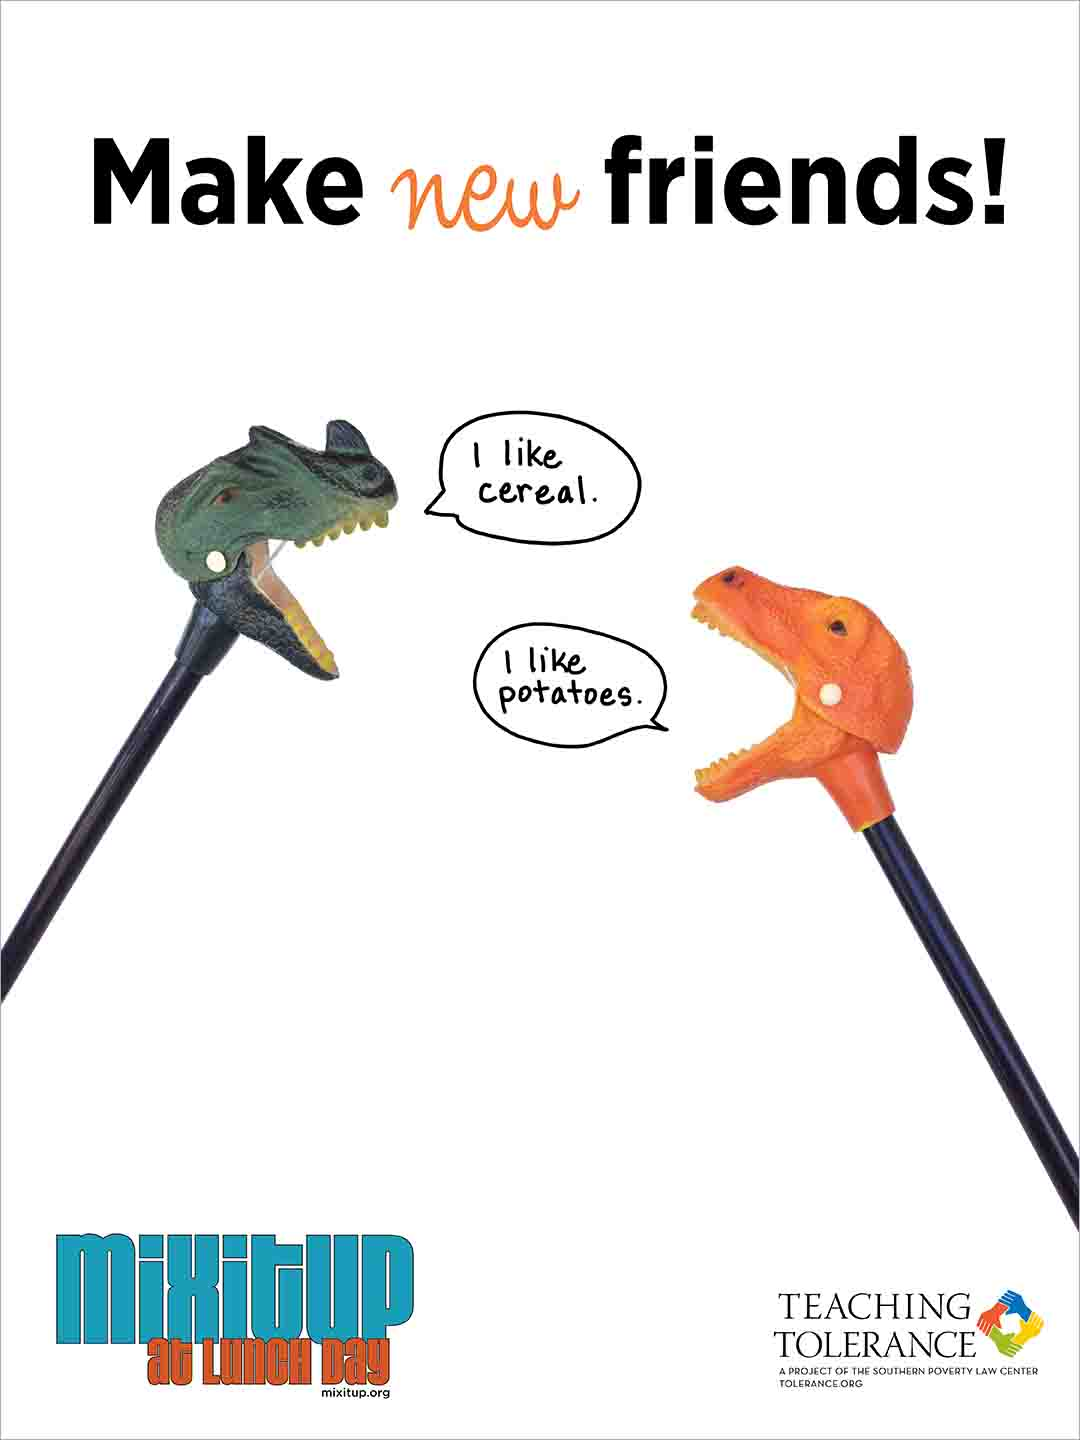 2014_web_mix_poster_friends.jpg